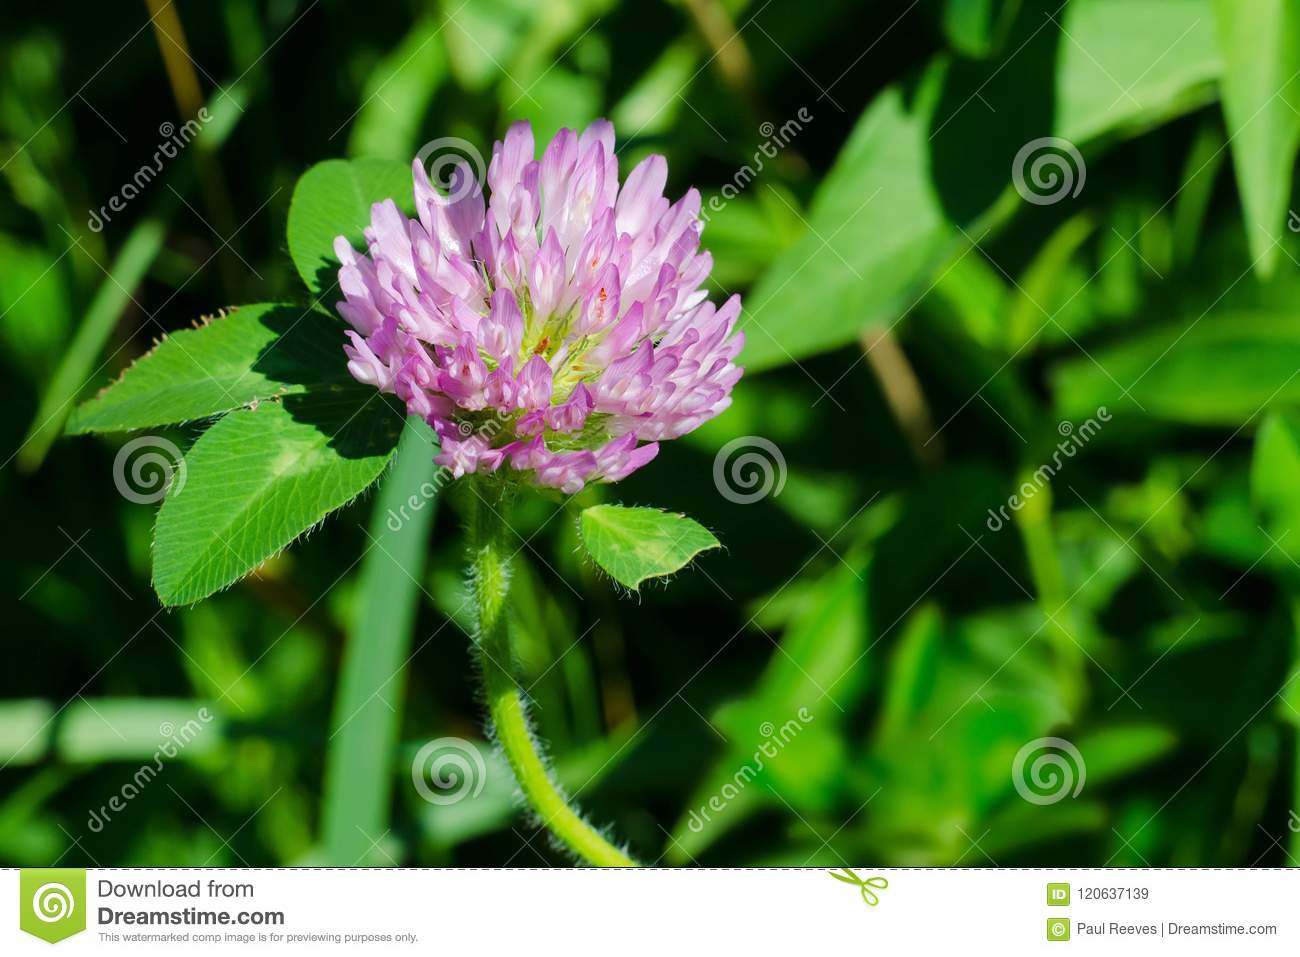 Download Red Clover - Trifolium Pratense Stock Image - Image of america, horticulture: 120637139